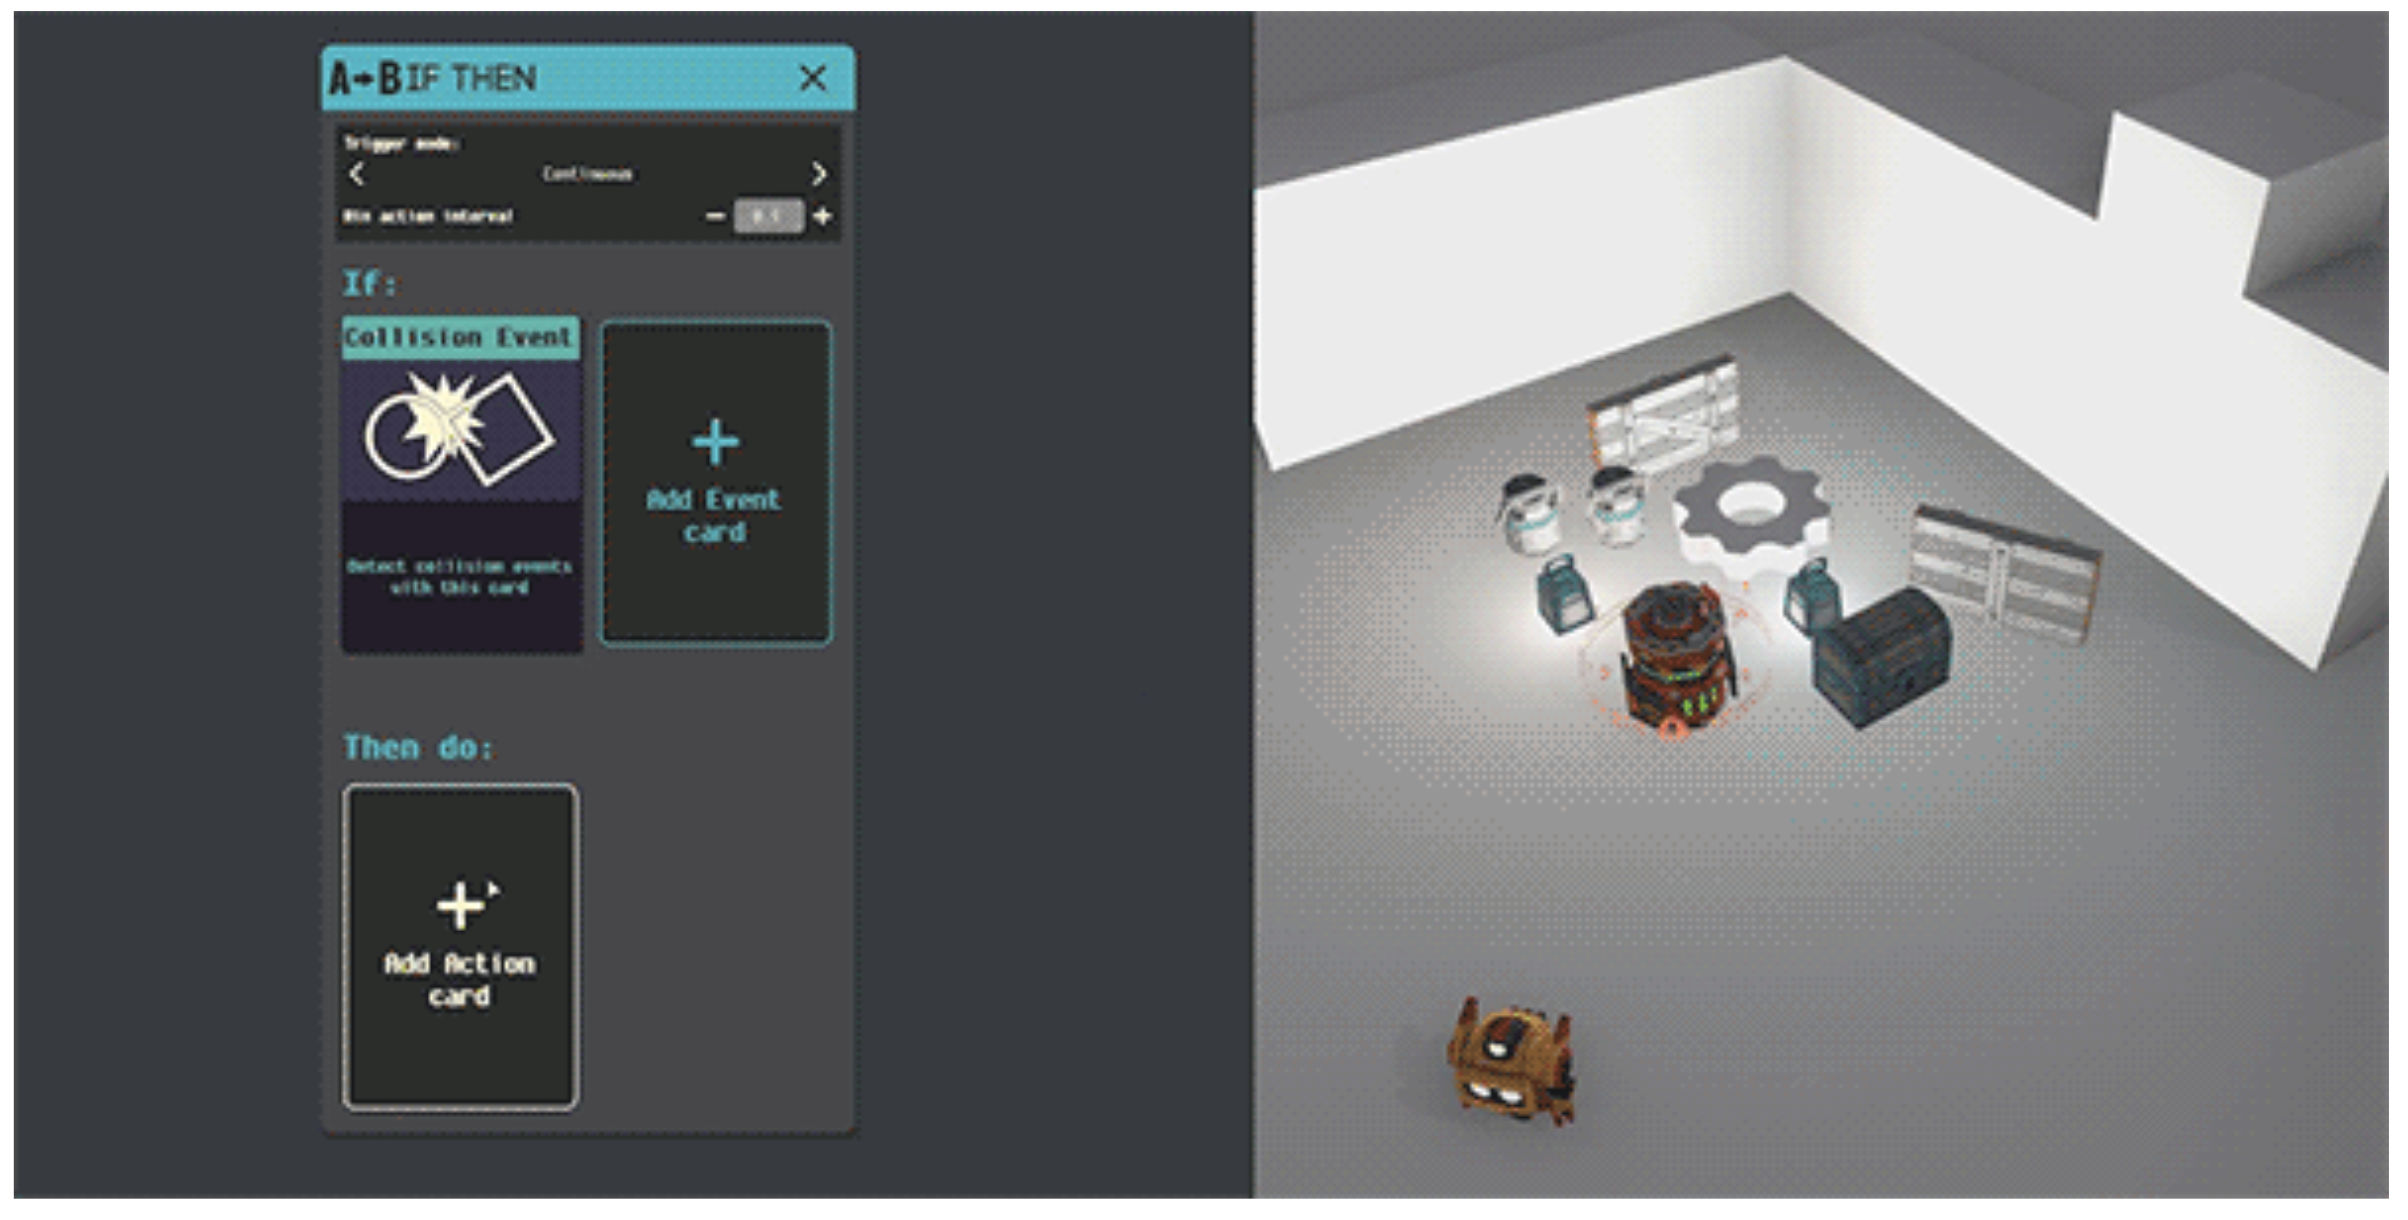 An image from Game Builder, Google's tool for building games without needing to code